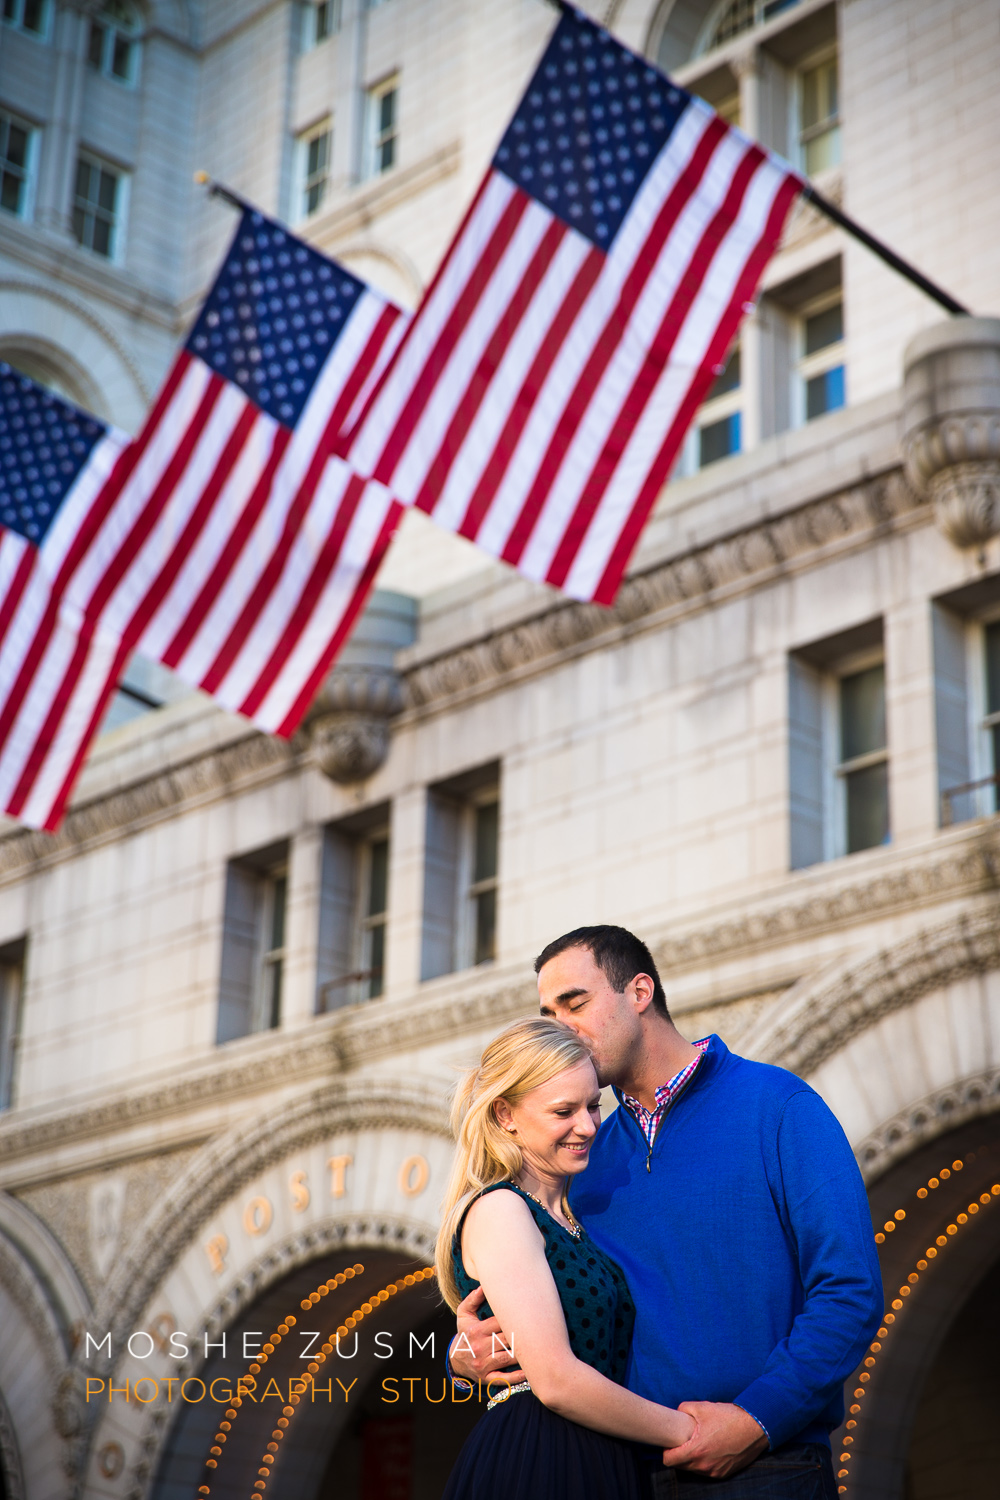 Navy-yard-engagement-photo-shoot-washington-dc-moshe-zusman-post-office-13.jpg